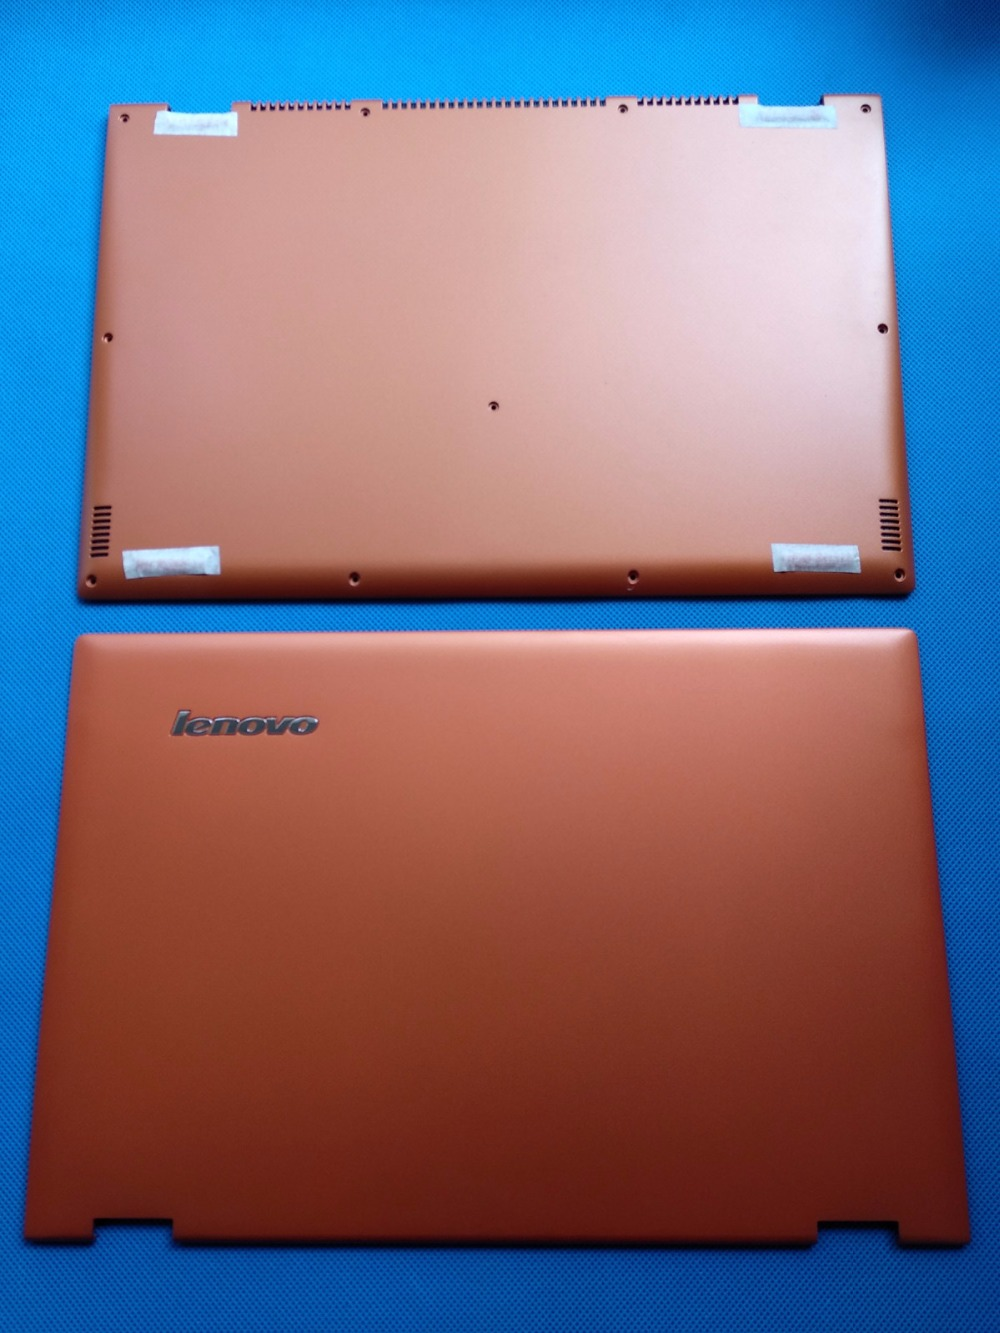 New Original Lenovo Ideapad Yoga 2 Pro 13 LCD Back Rear Lid Cover+ Base Cover Bottom Lower Case AM0S9000200 AM0S9000300 Orange new for lenovo ideapad yoga 13 bottom chassis cover lower case base shell orange w speaker l